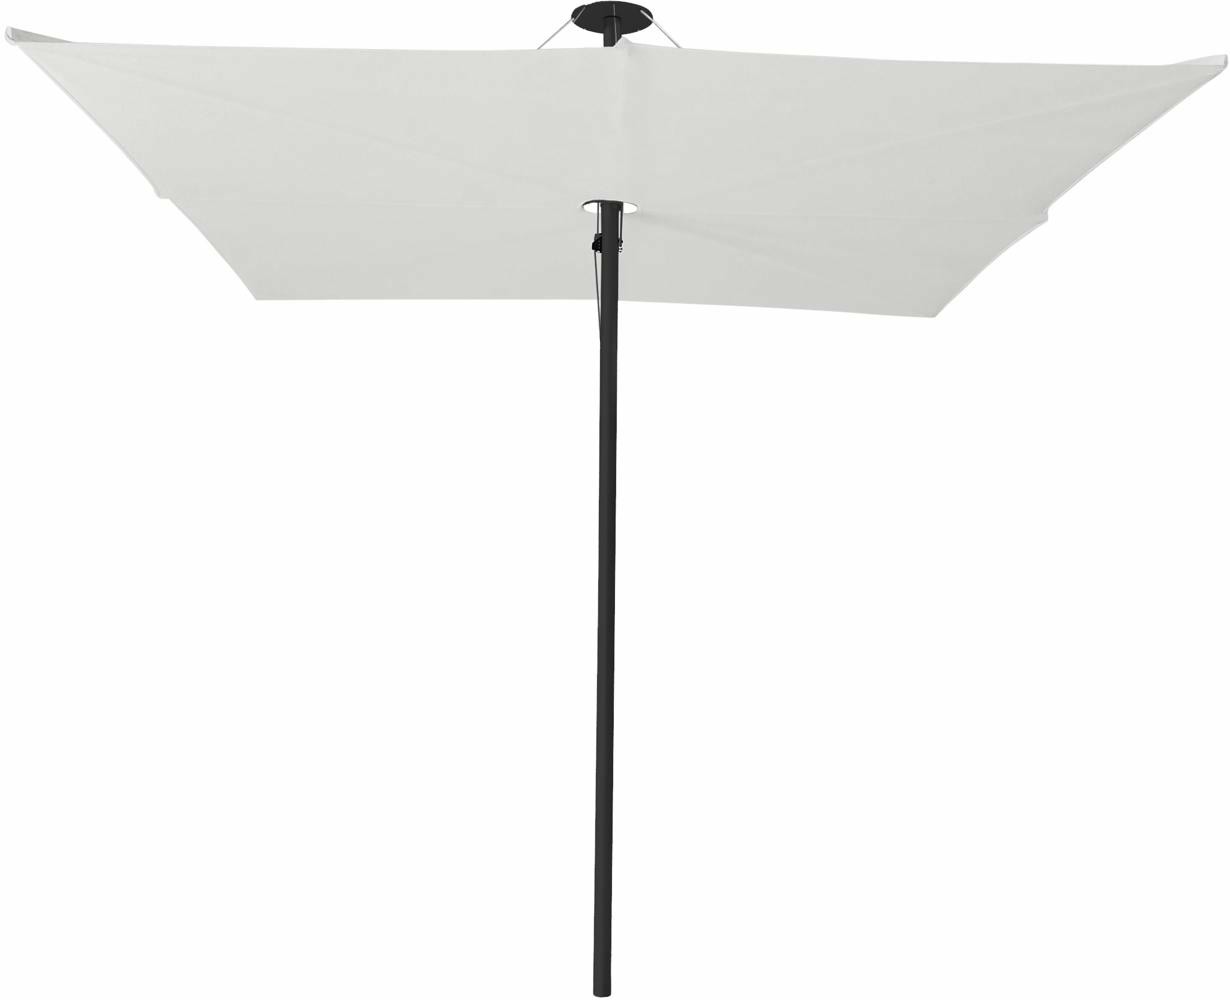 Infina center post umbrella, 3 m square, with frame in Dusk and Solidum Canvas canopy.